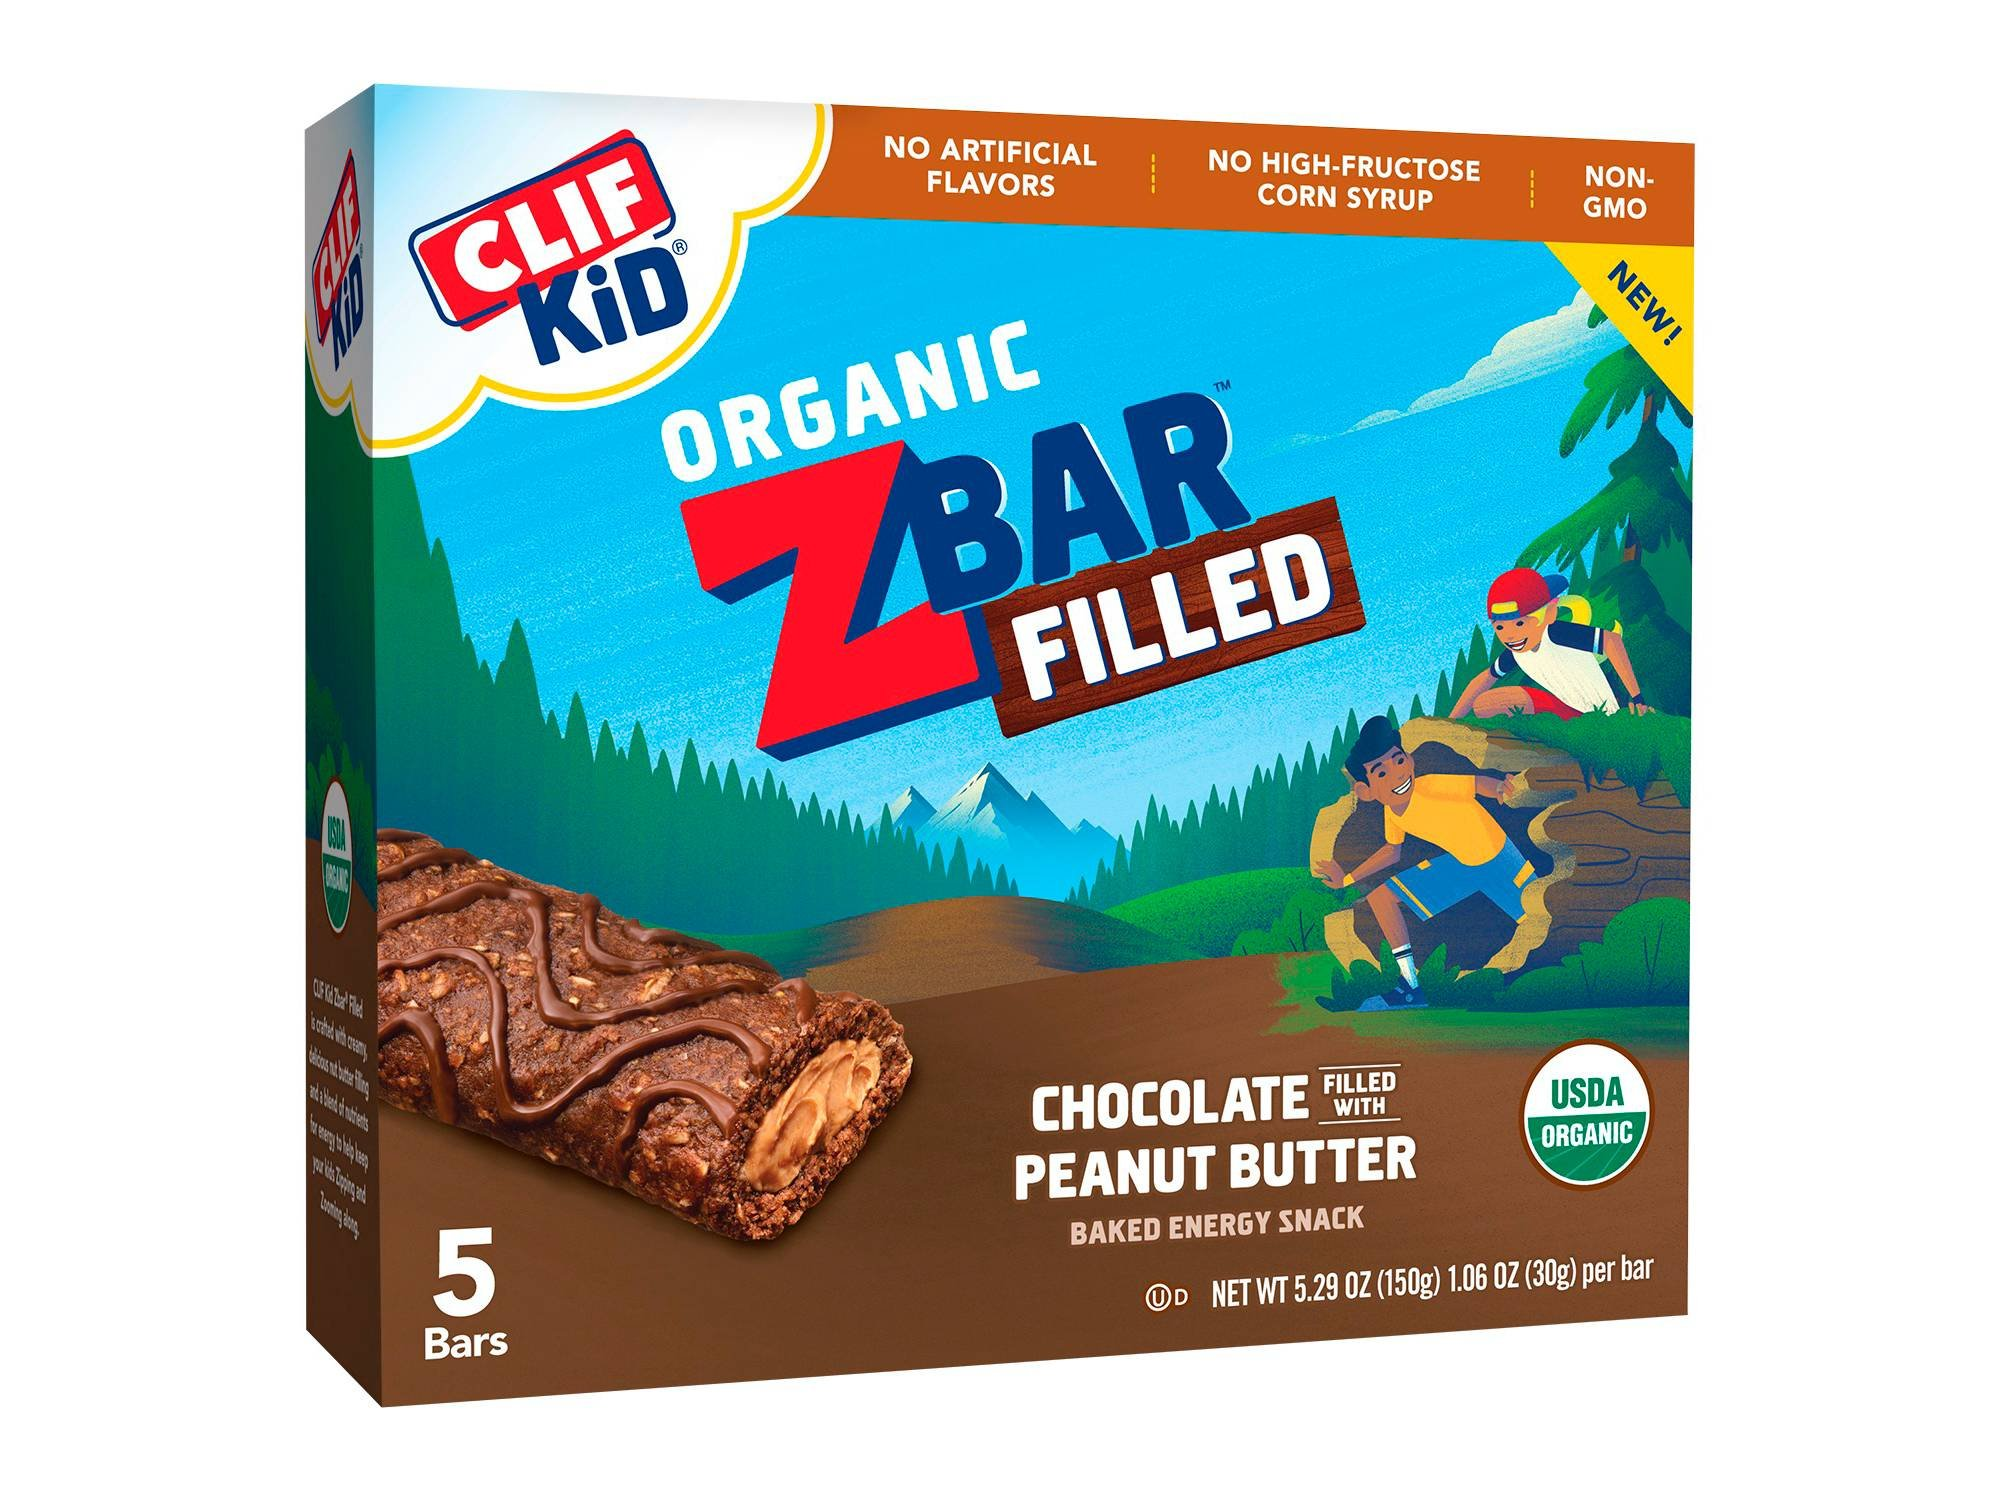 Clif Kid Zbar Filled with Chocolate Peanut Butter Energy Snack 1.06ozx5 bars, total 5.29oz by Clif Kid ZBar